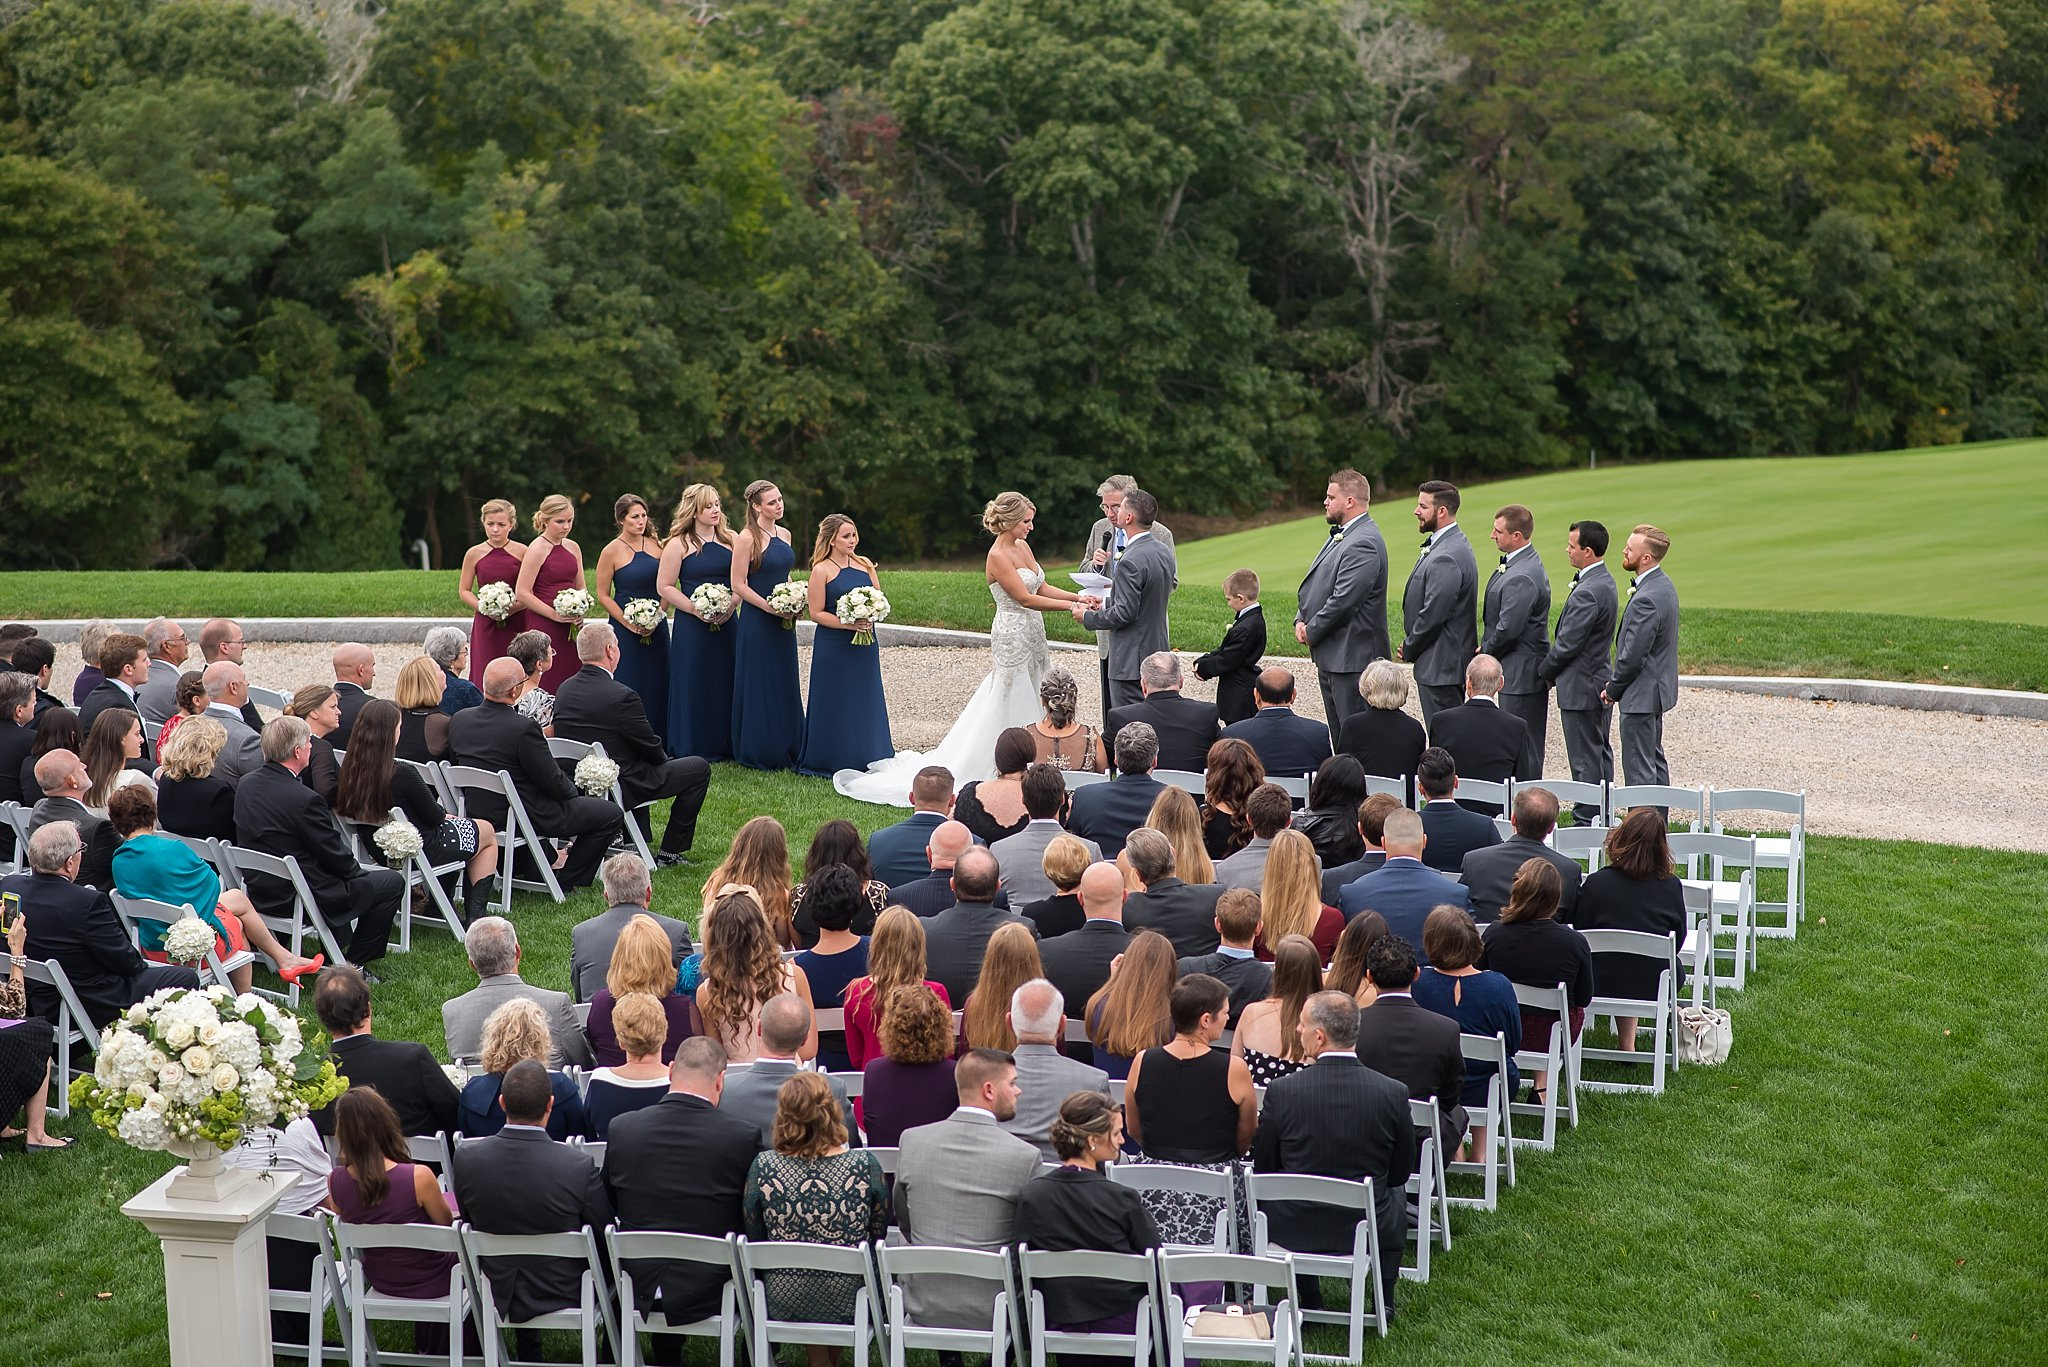 bride and groom wedding ceremony in falmouth ma.jpg